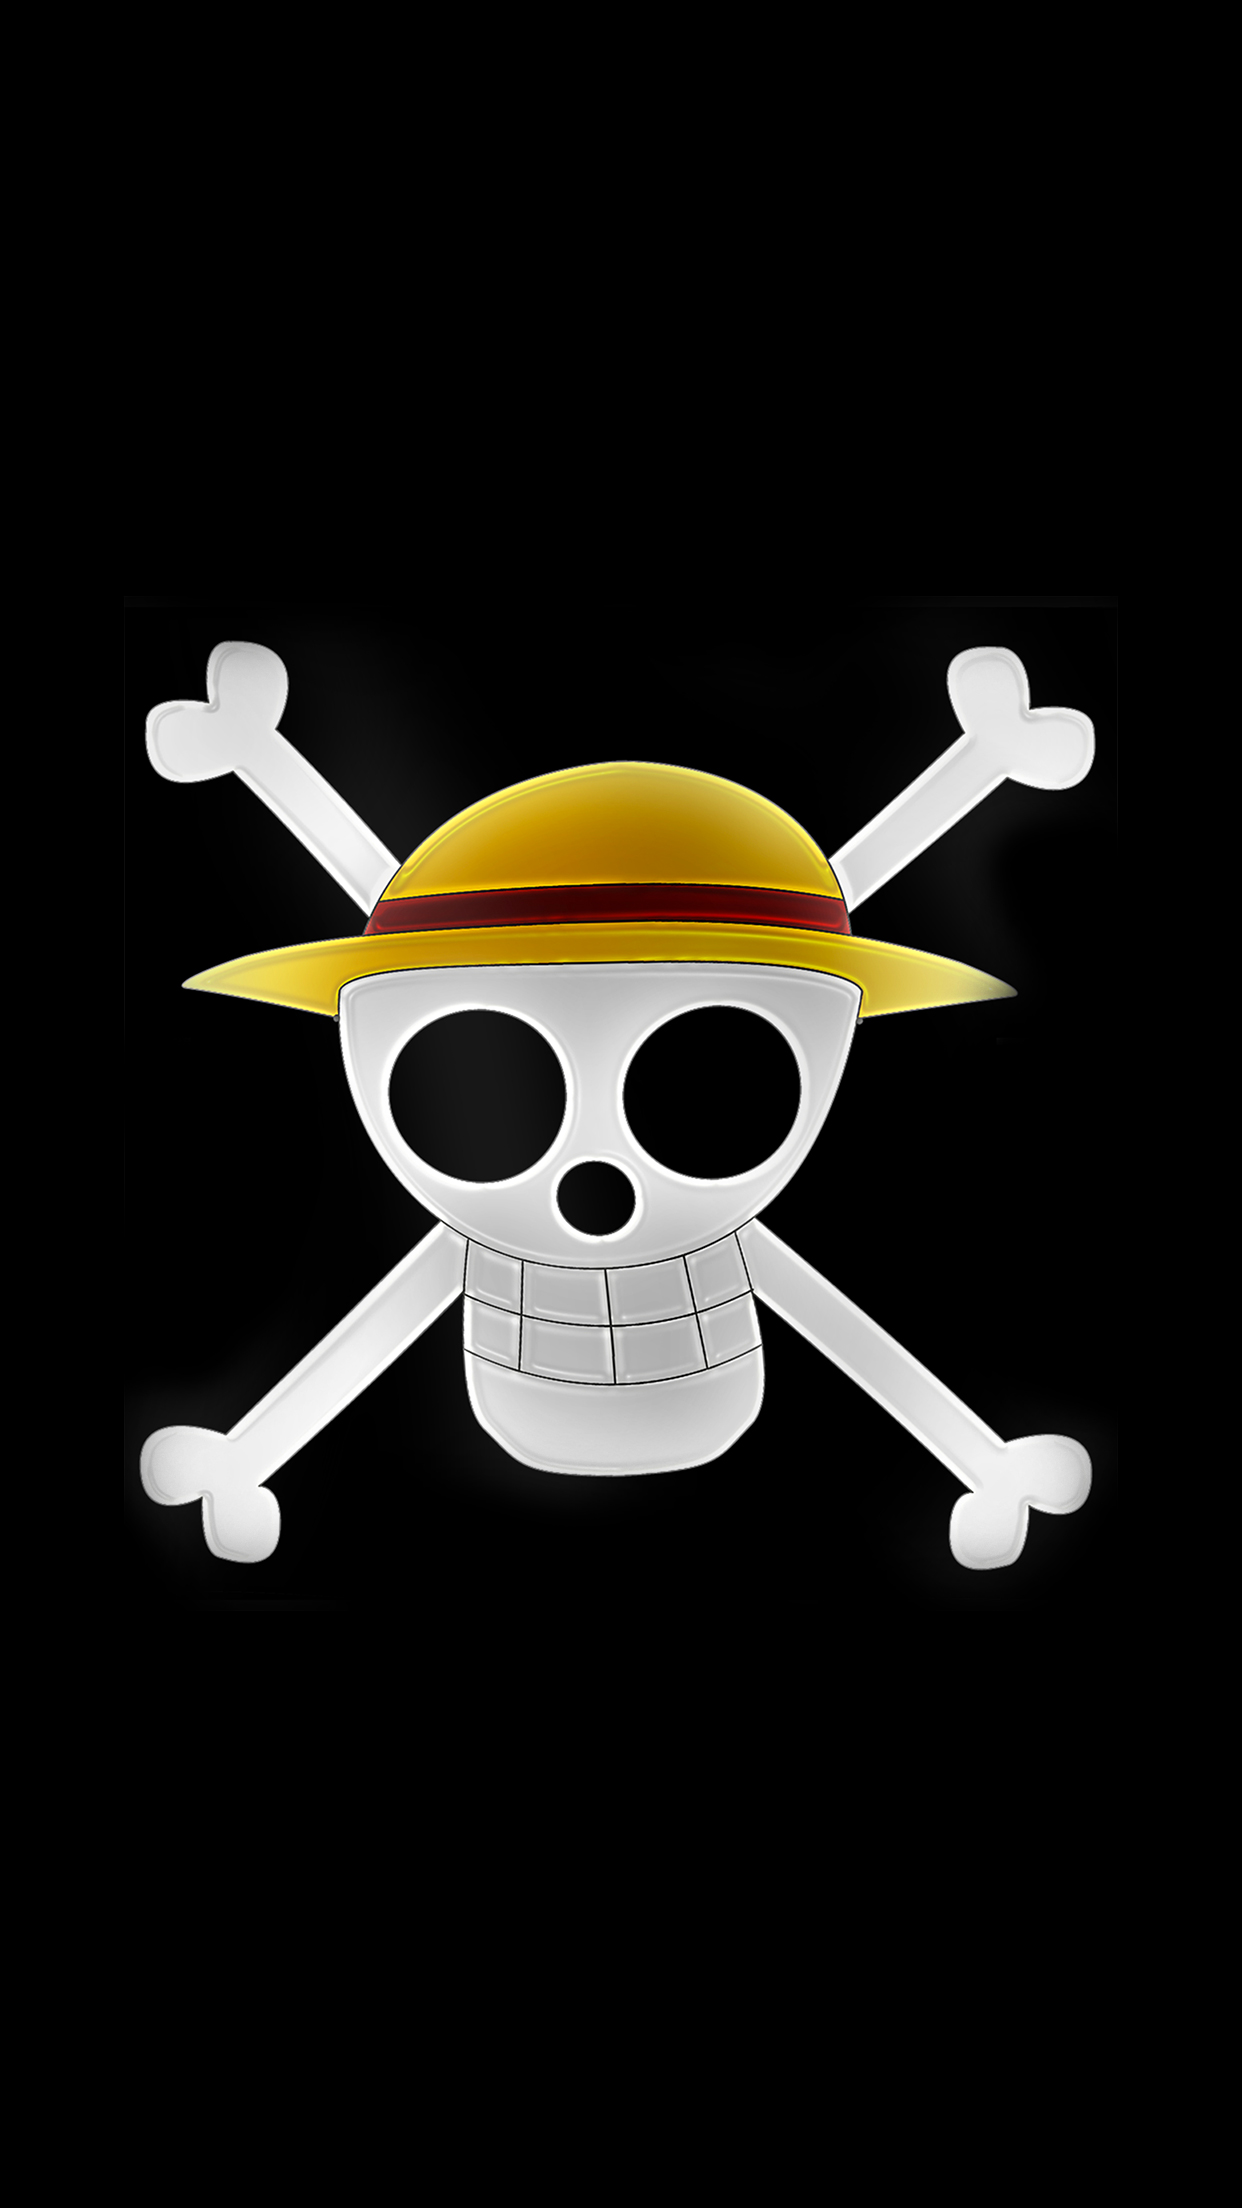 I say this with love: One Piece Logo Wallpaper for iPhone 11, Pro Max, X, 8, 7 ...